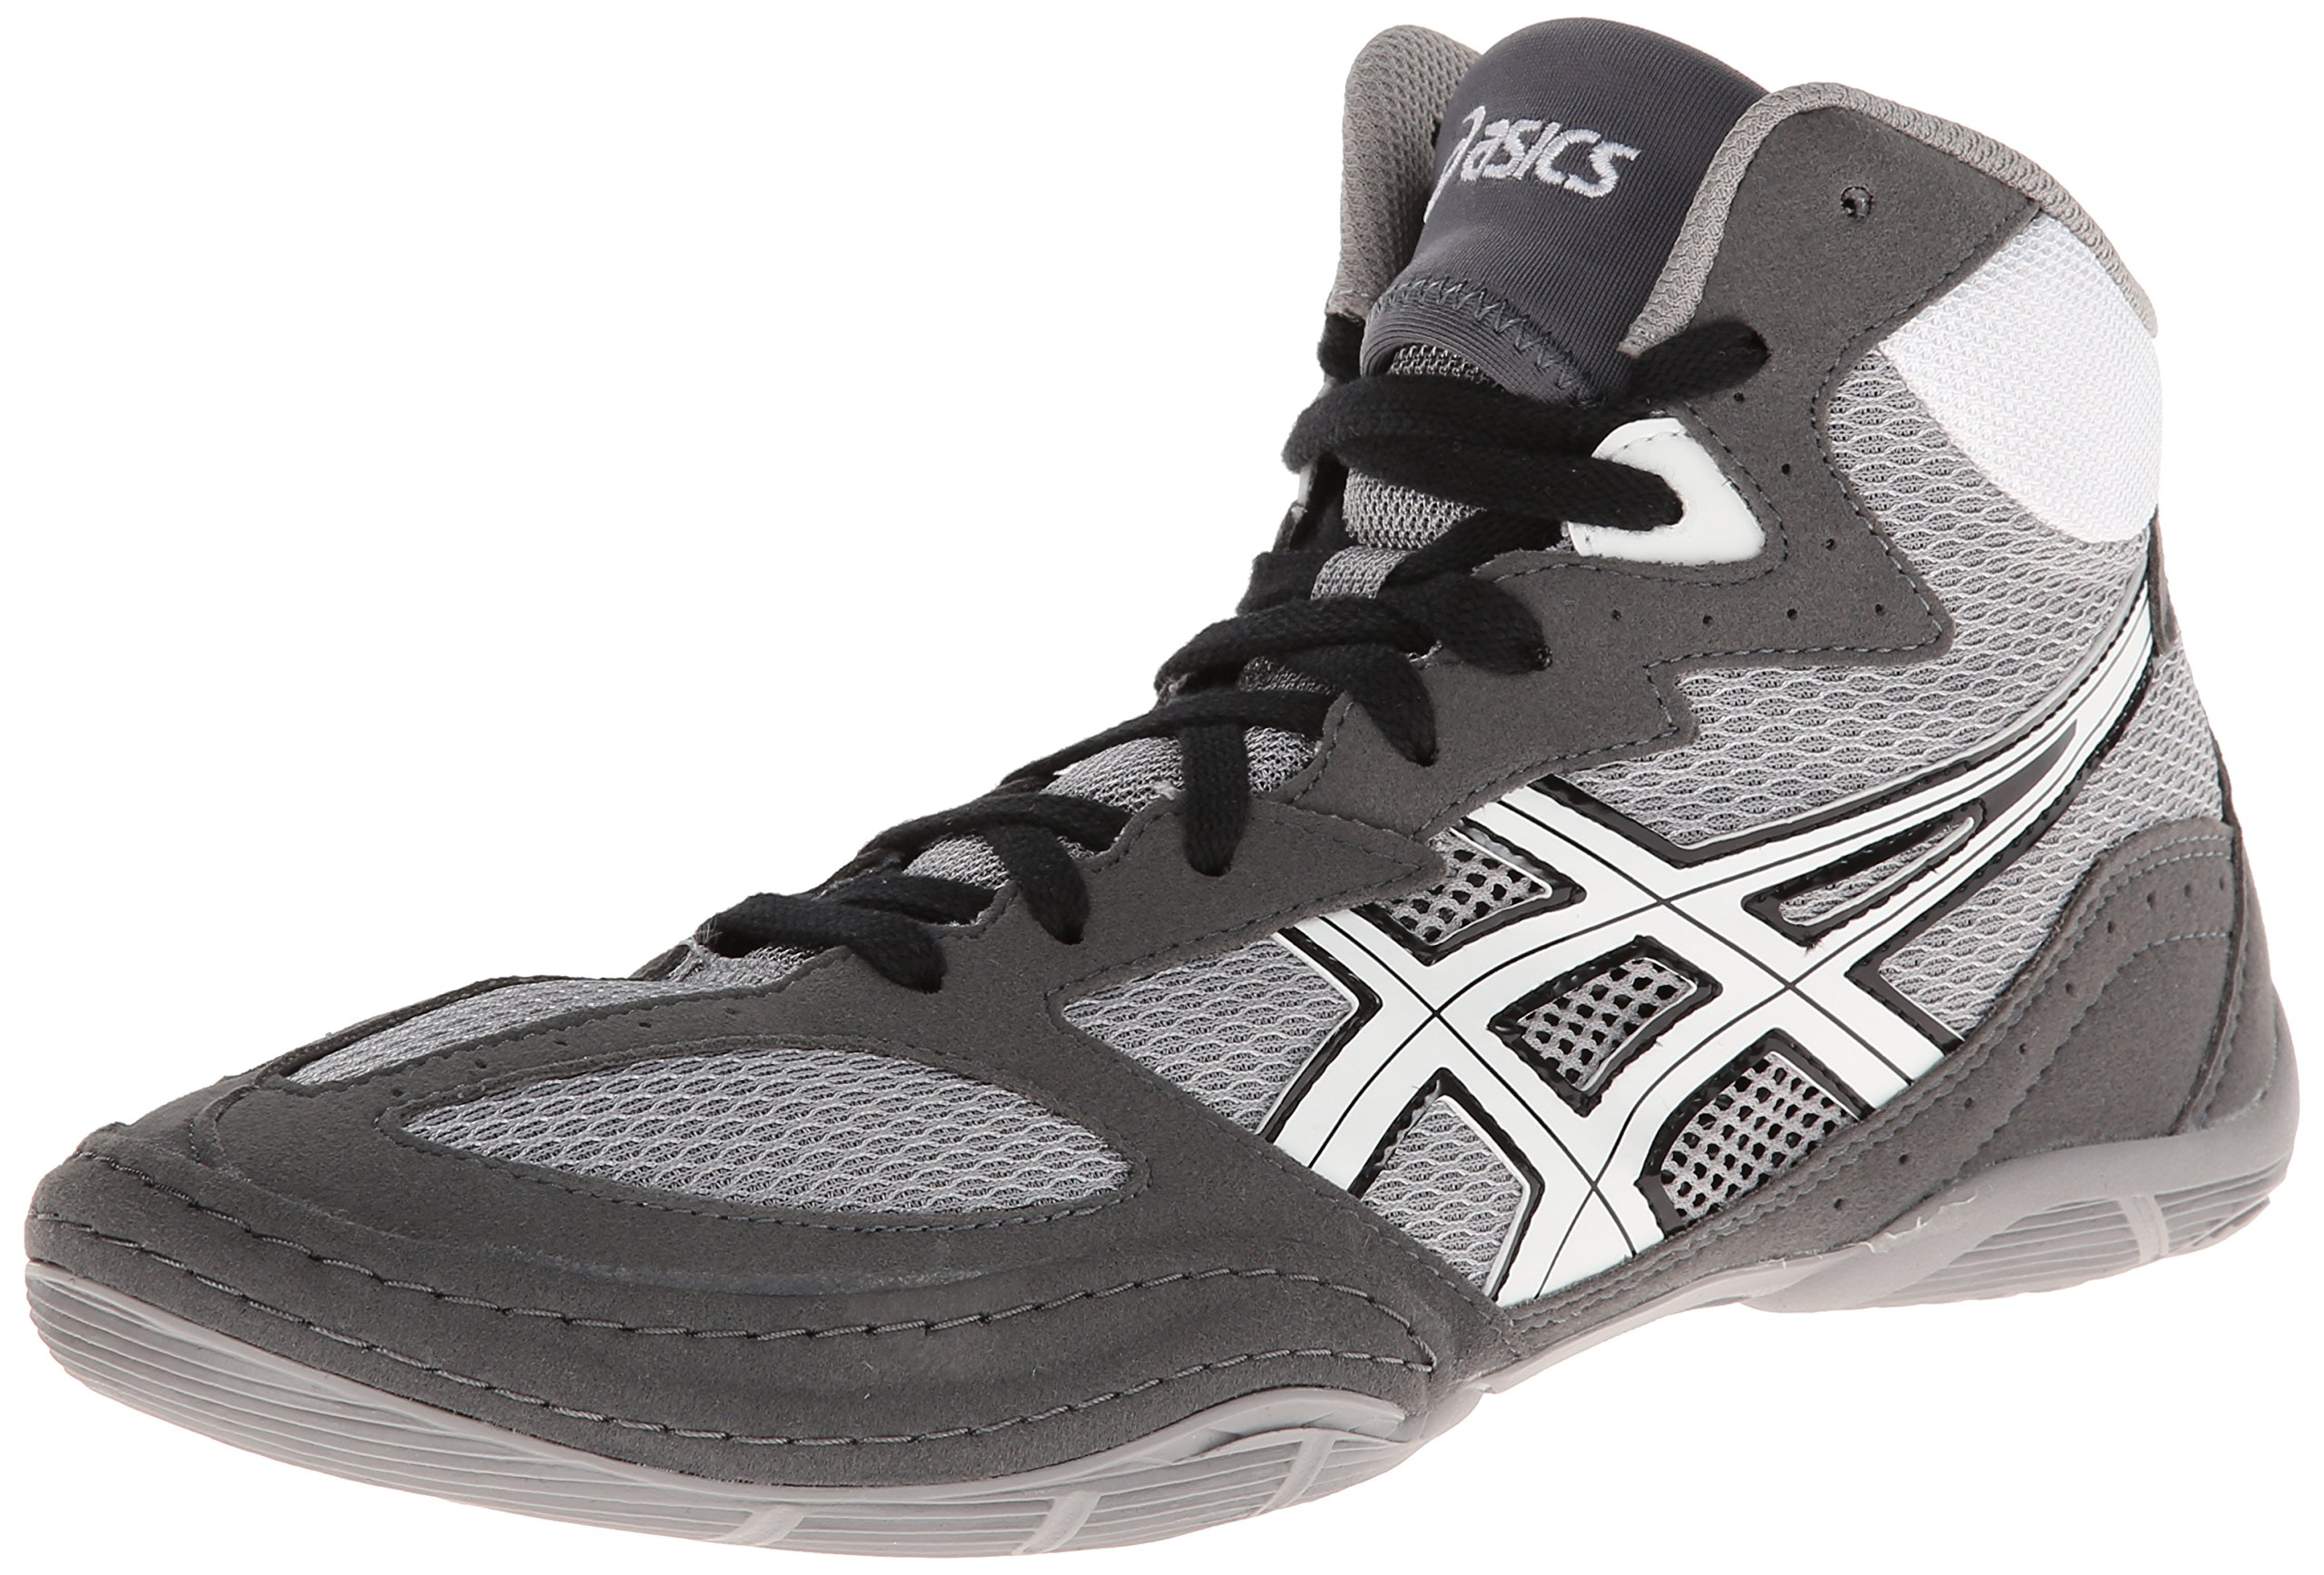 ASICS Men's Matflex 4 Wrestling Shoe,Granite/White/Black,8.5 M US